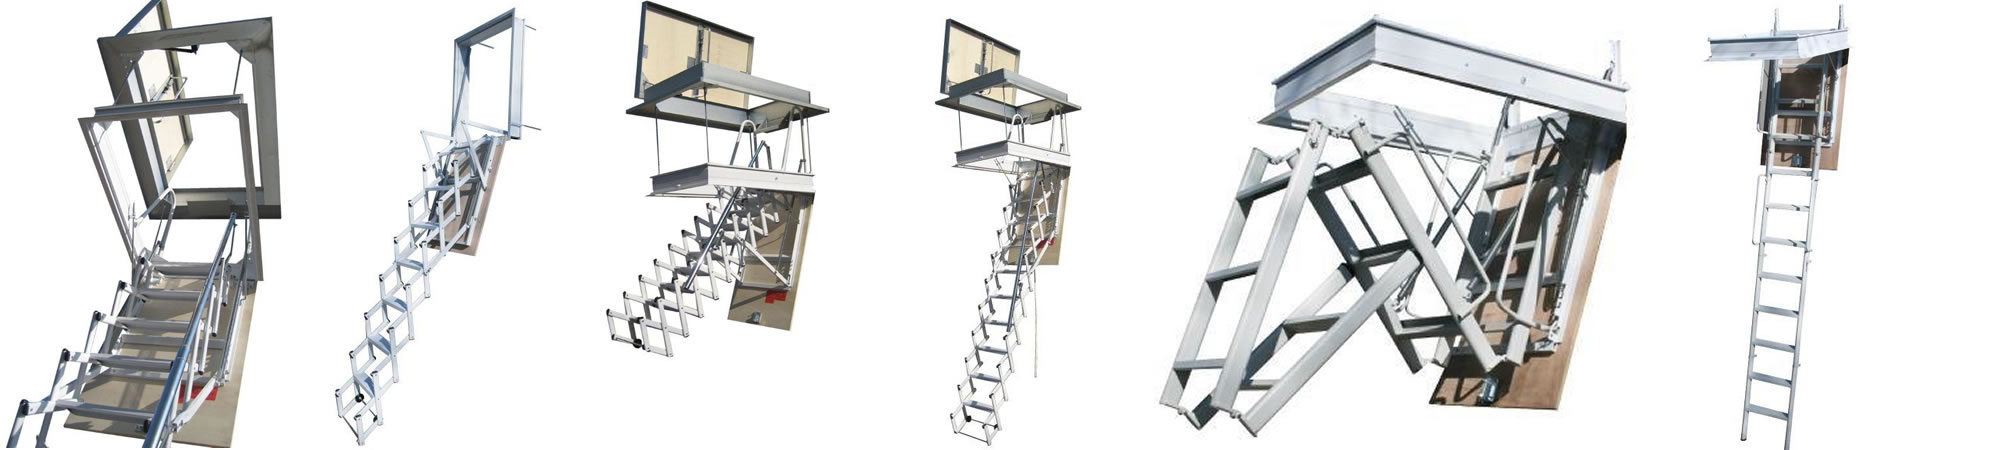 escaleras_slider